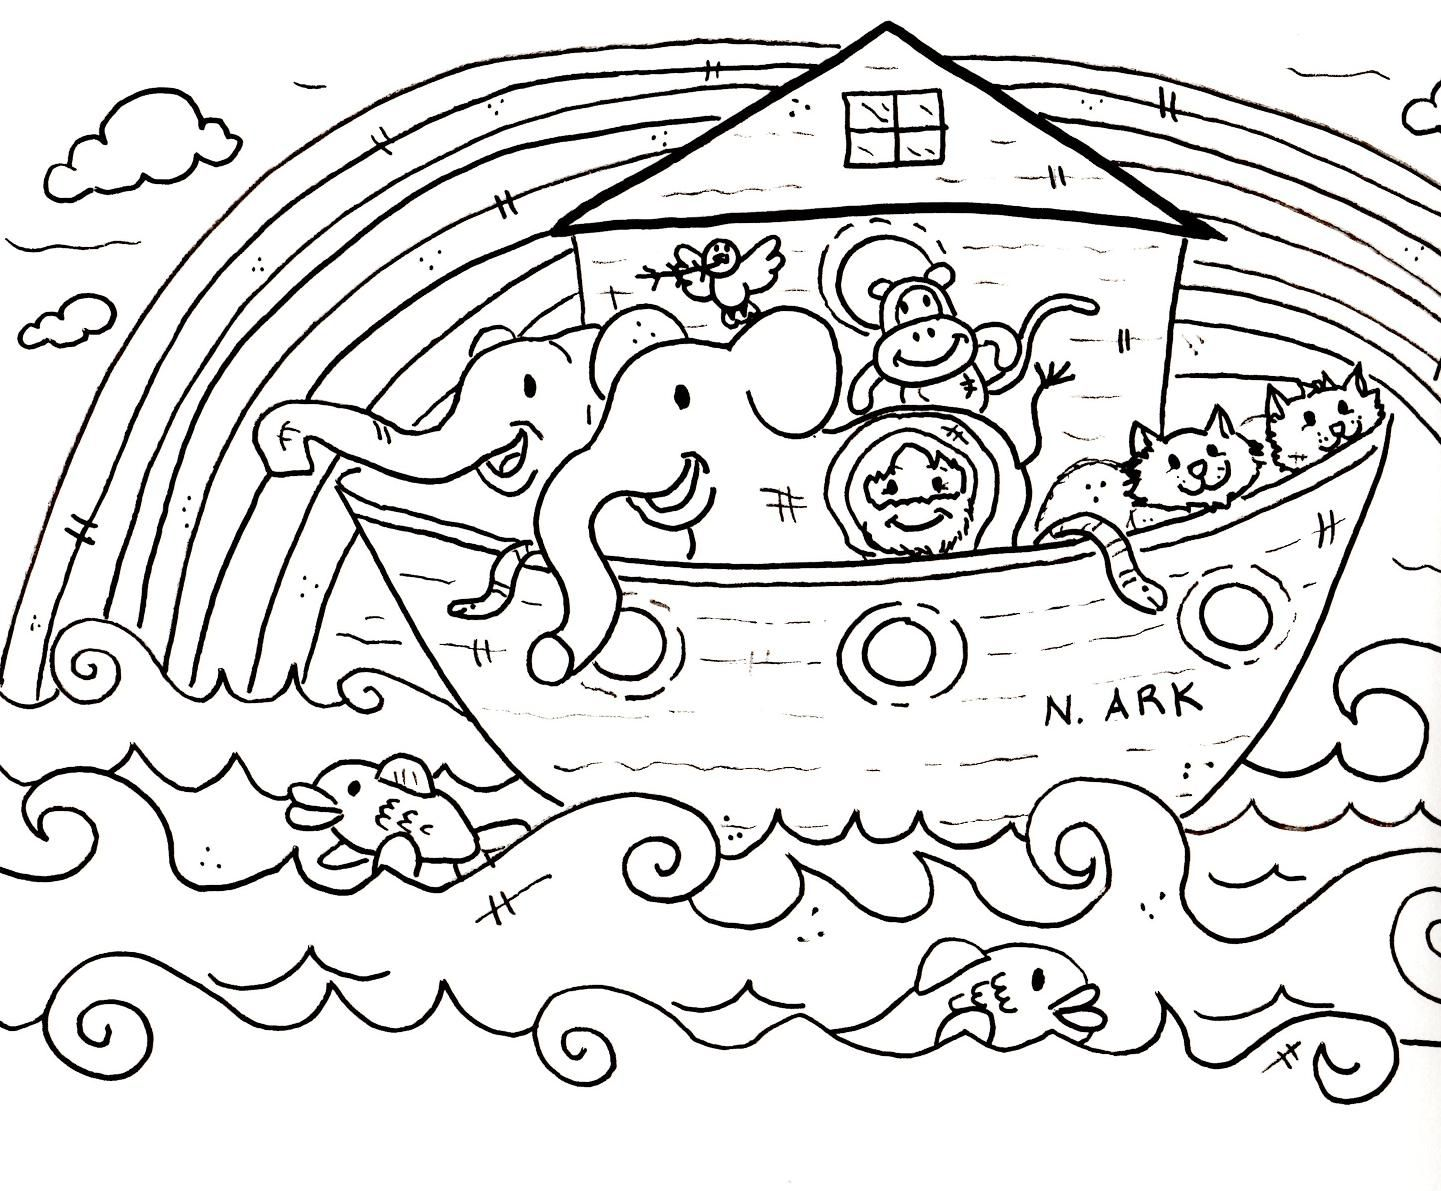 Mothers day coloring sheets for sunday school - Sunday School Coloring Pages